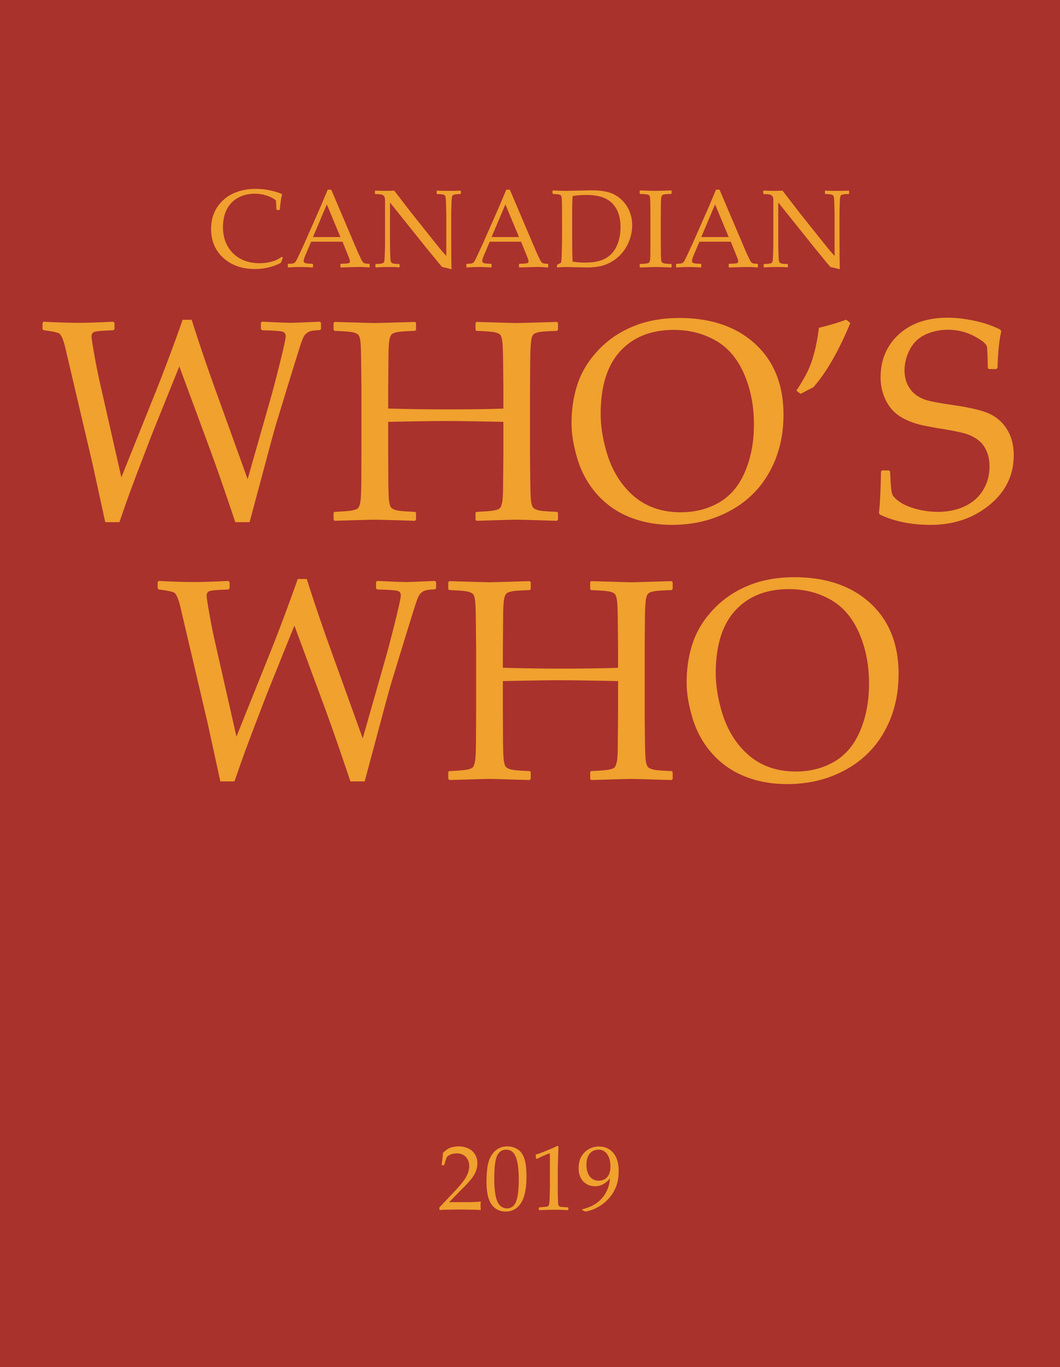 CANADIAN WHO'S WHO 2019